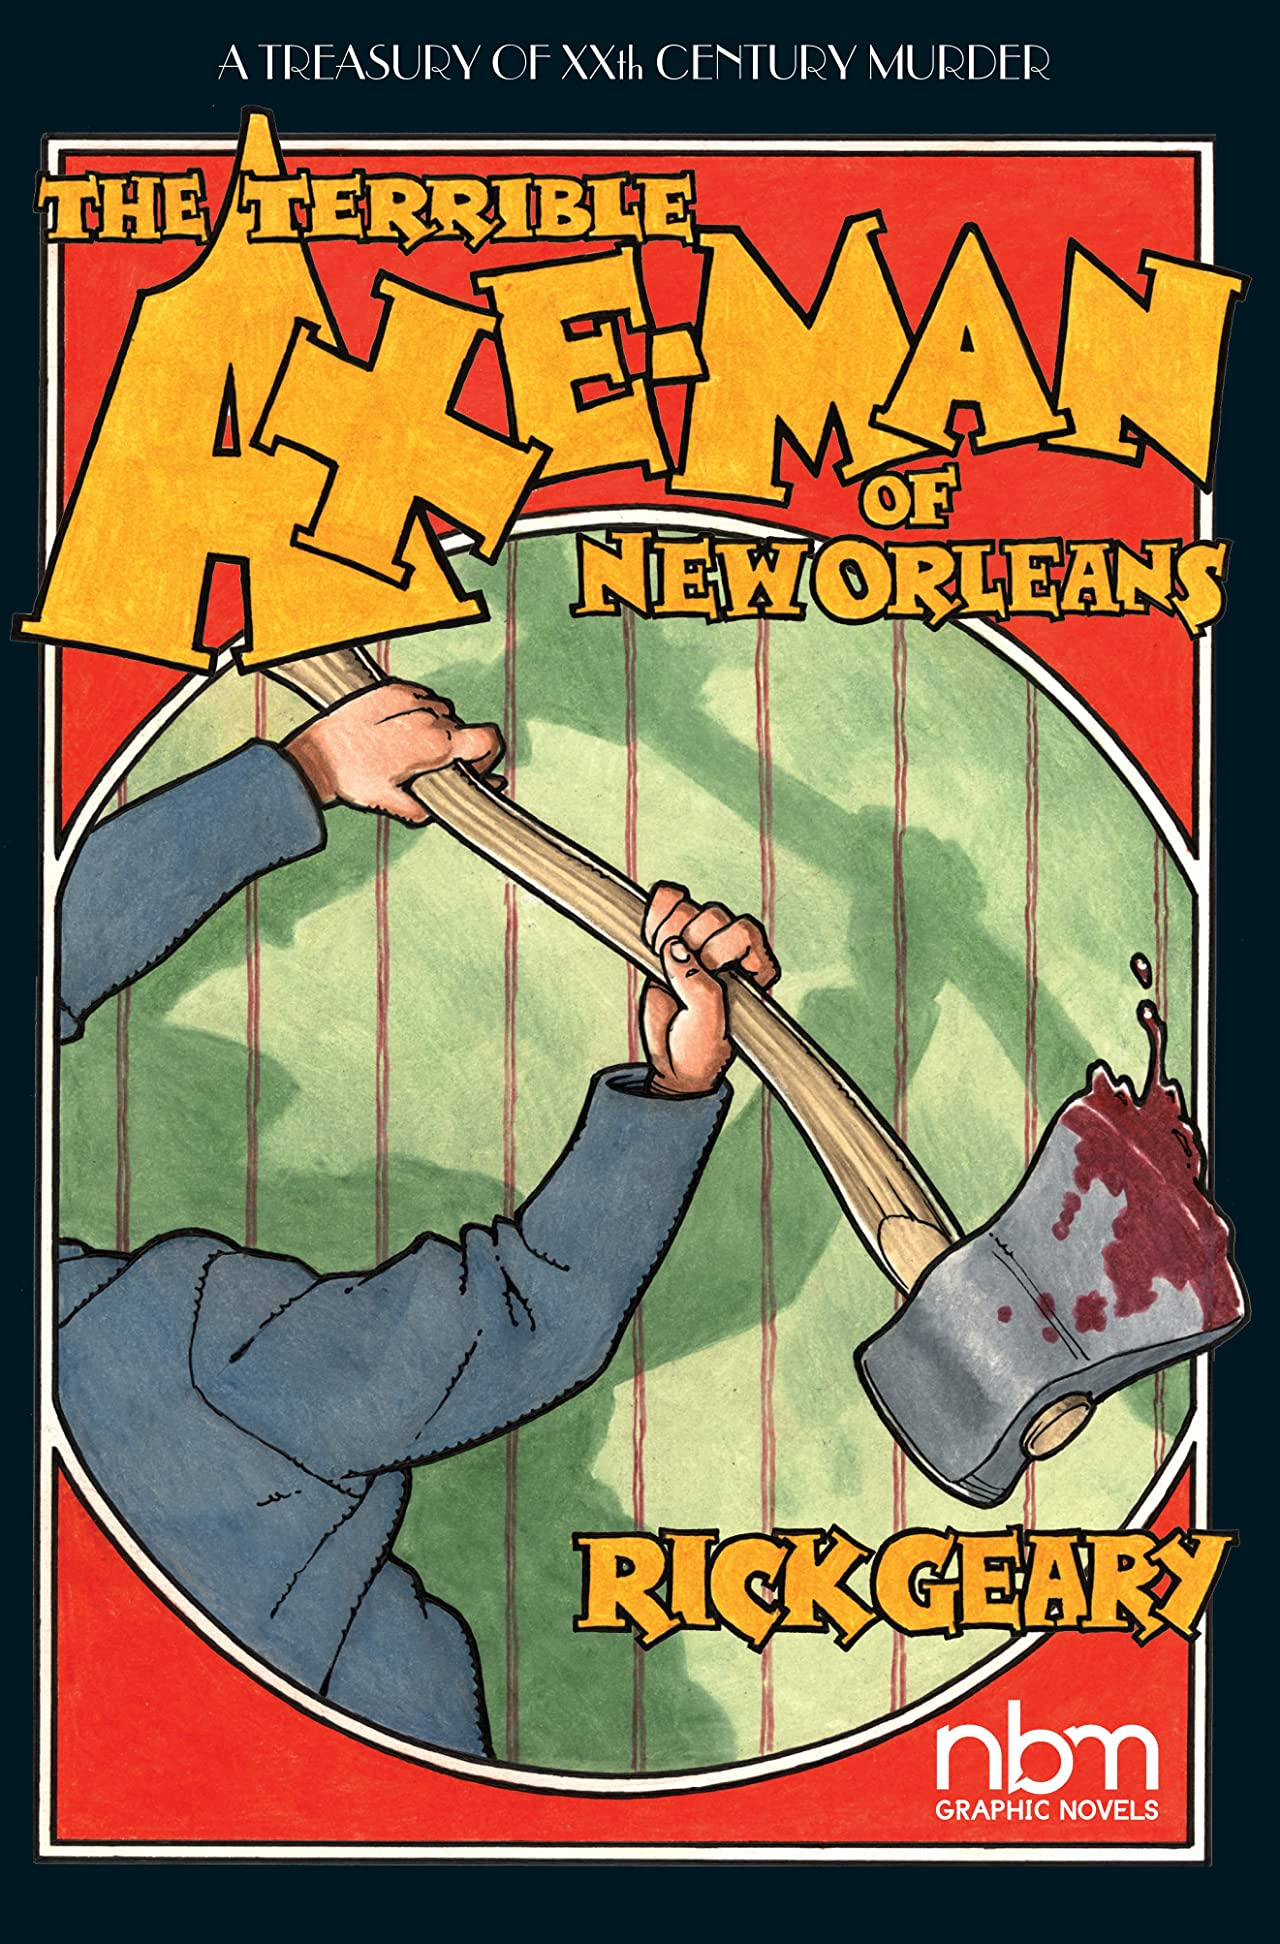 Treasury of XXth Century Murder: The Axe-Man of New Orleans